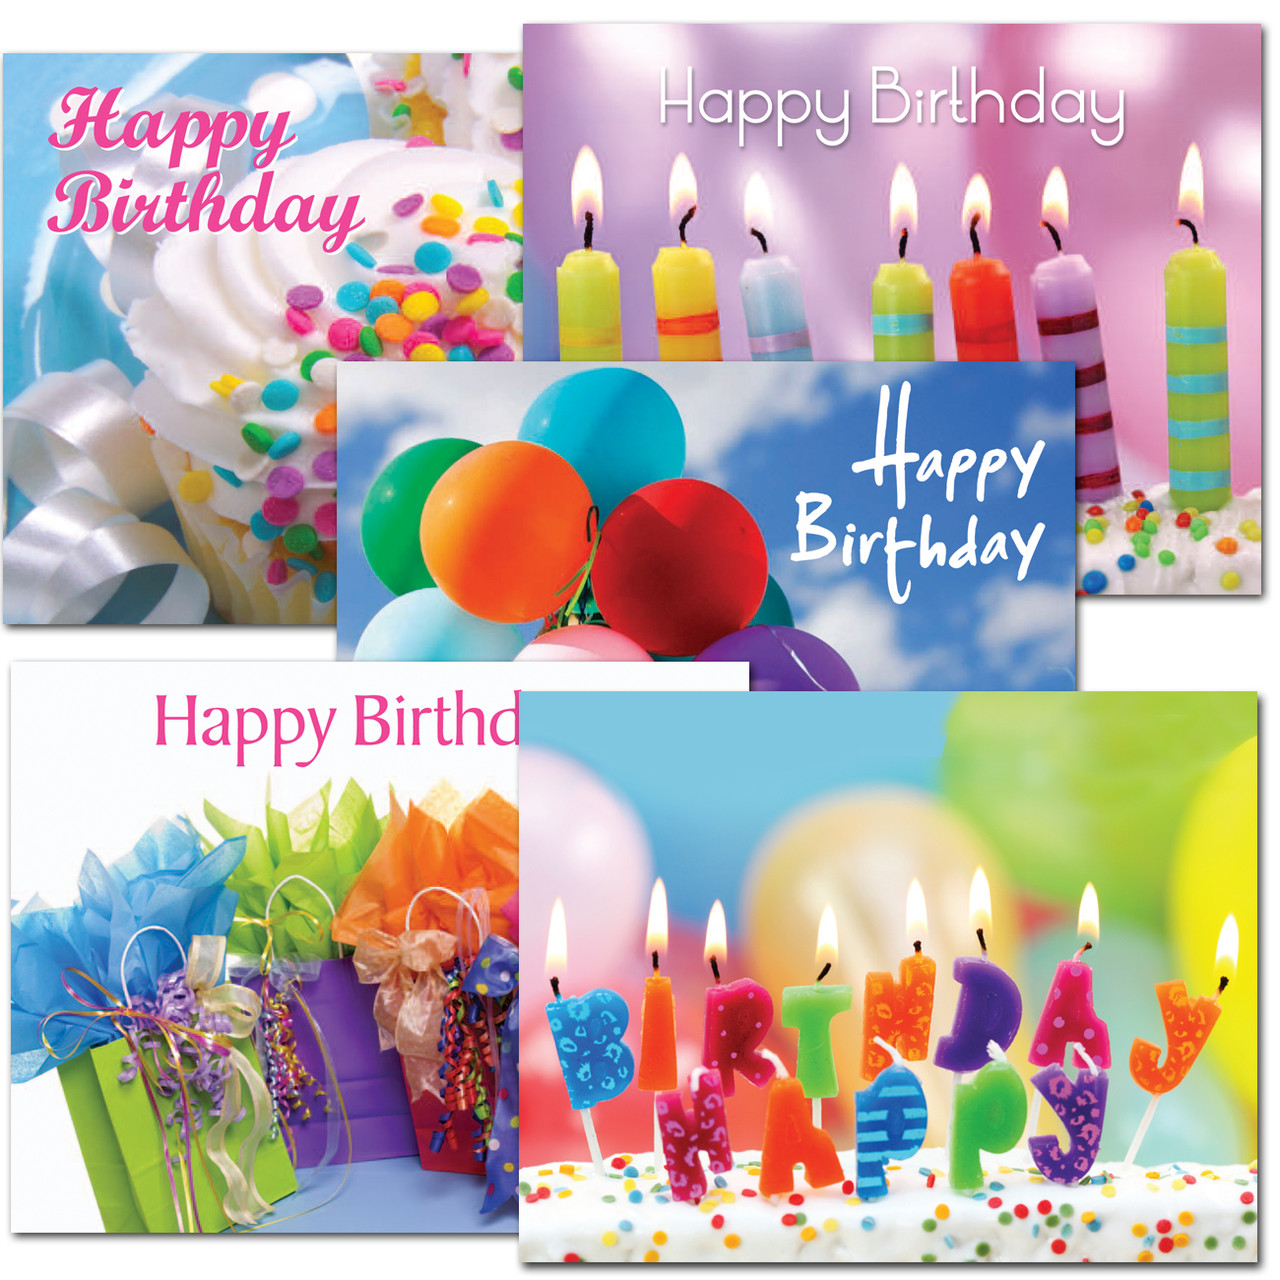 Assorted boxed birthday postcards with happy birthday text on the front, room to address and message on the flip side.  Each flip side has a different birthday greeting.  5 different birthday postcards, with 12 each for a total of 60 postcards.